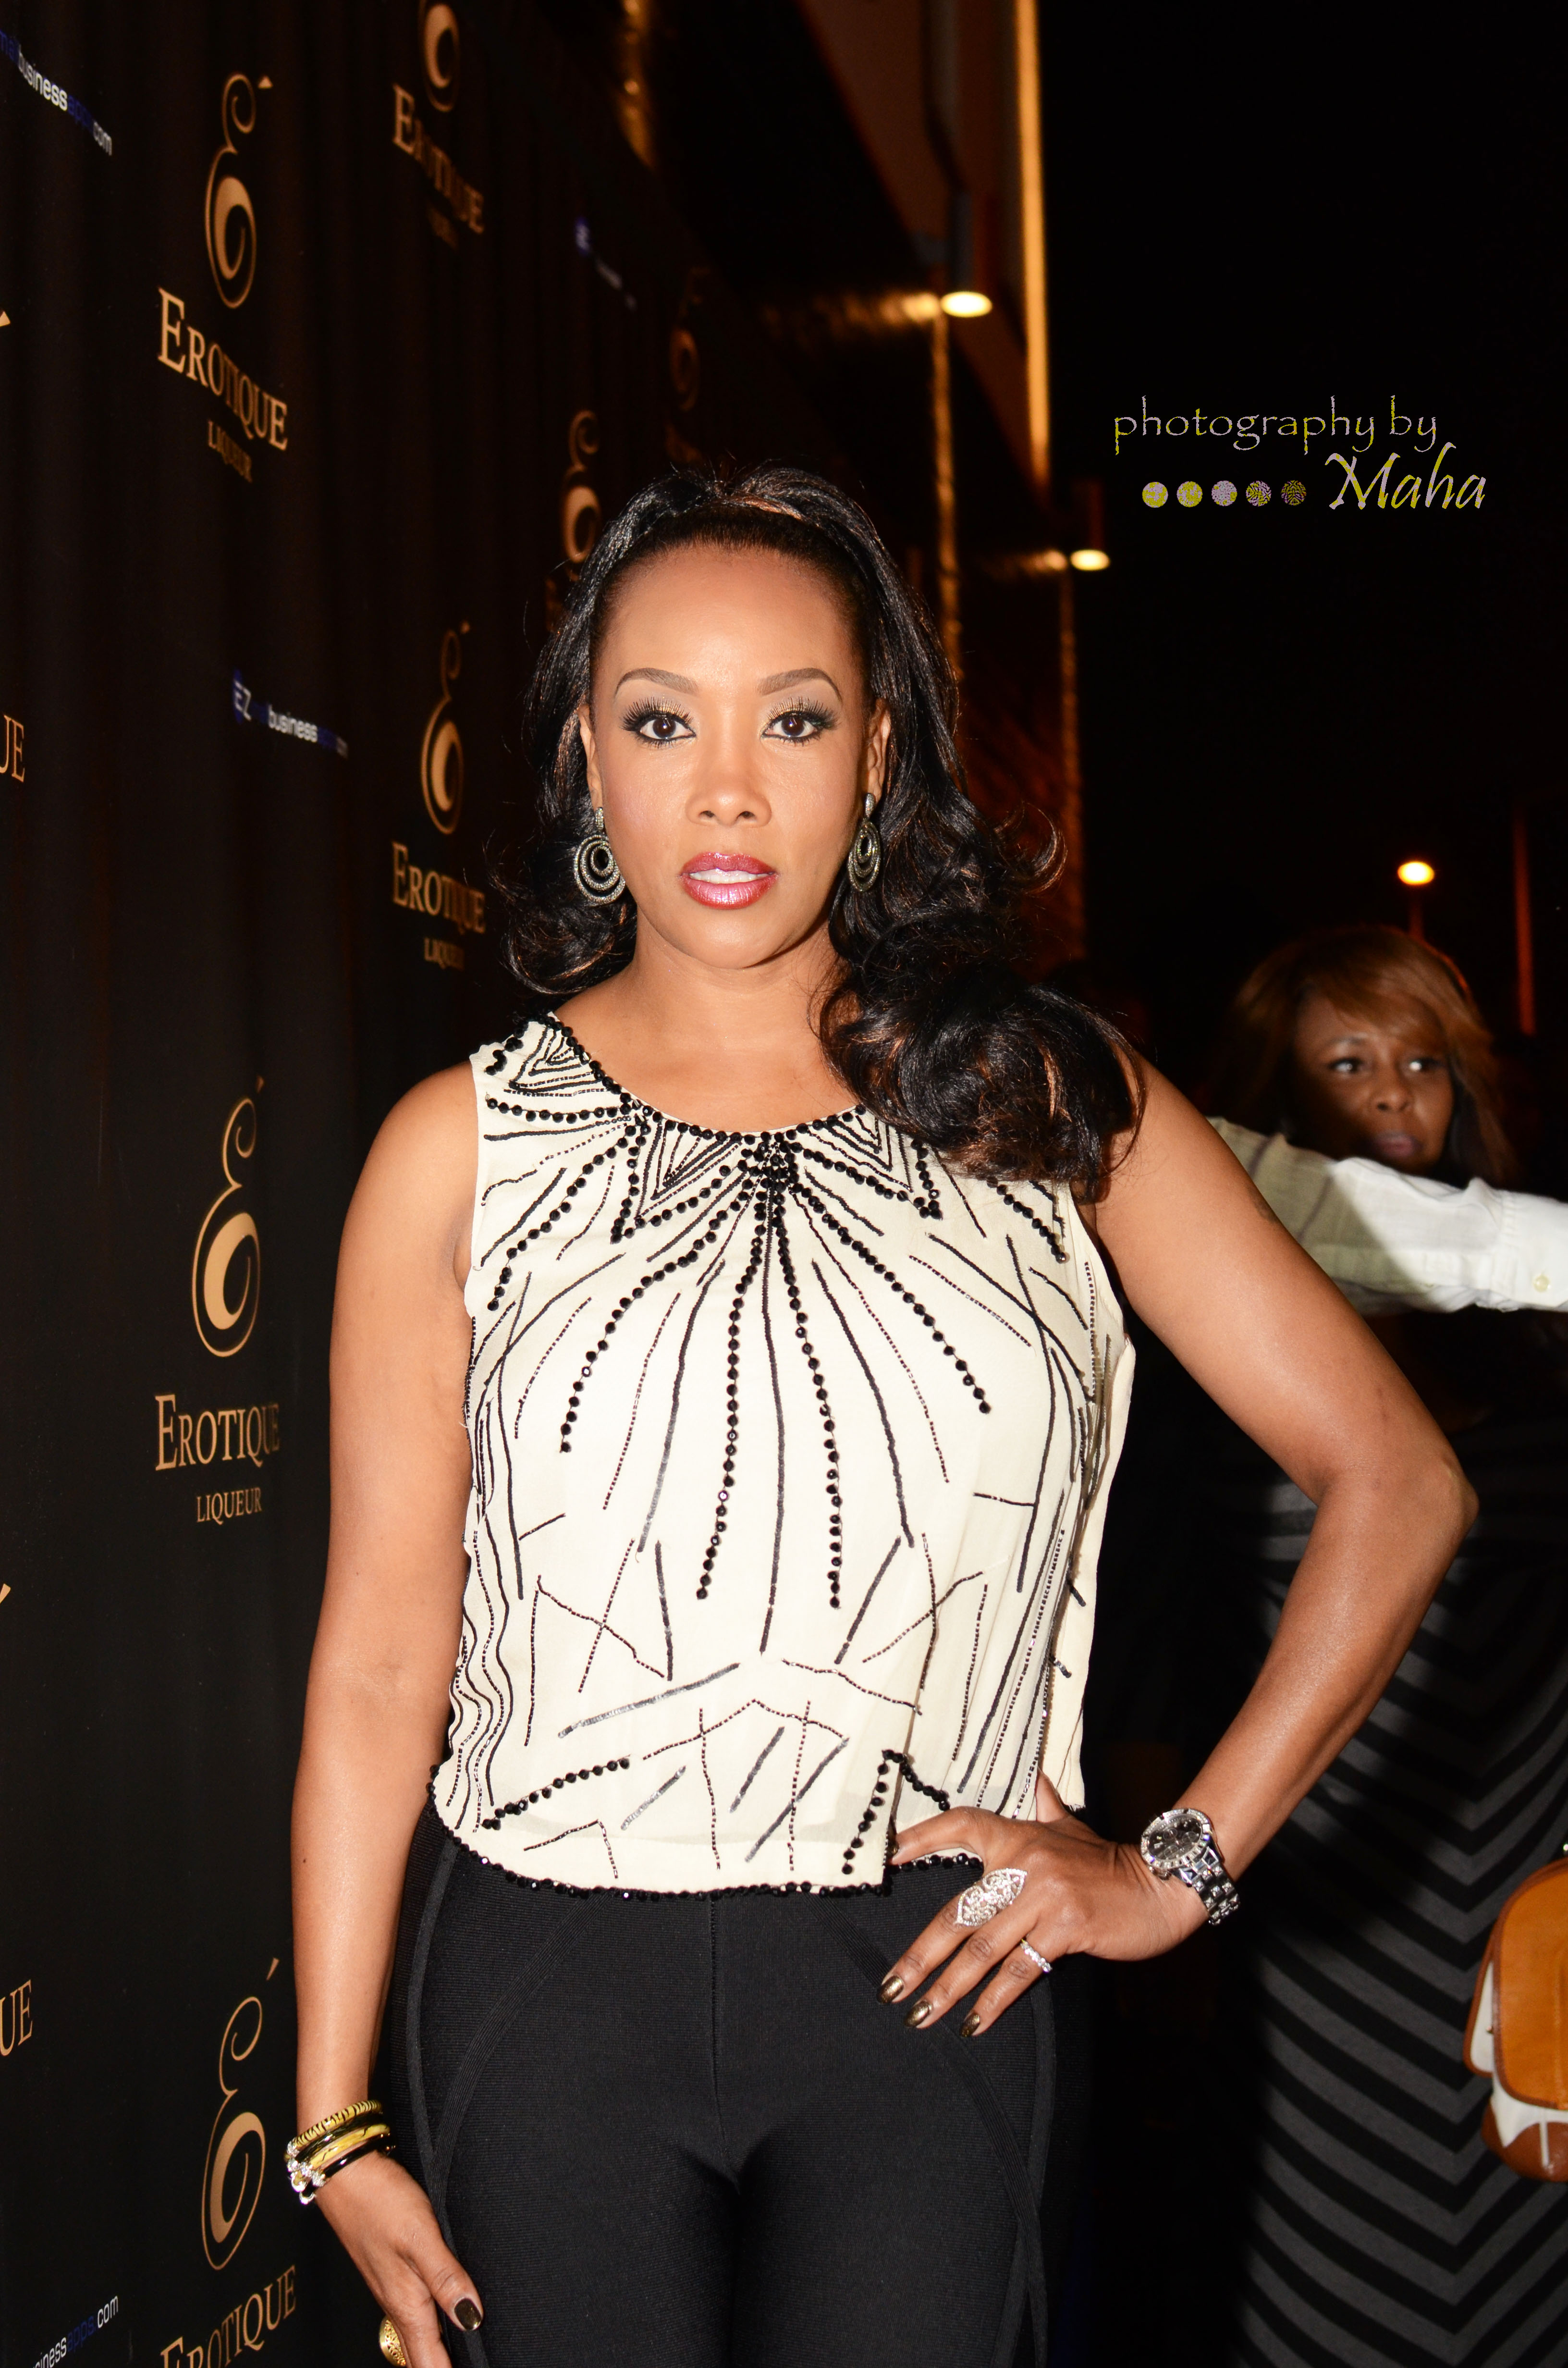 vivica foxx-dc erotiqua event-the jasmine brand